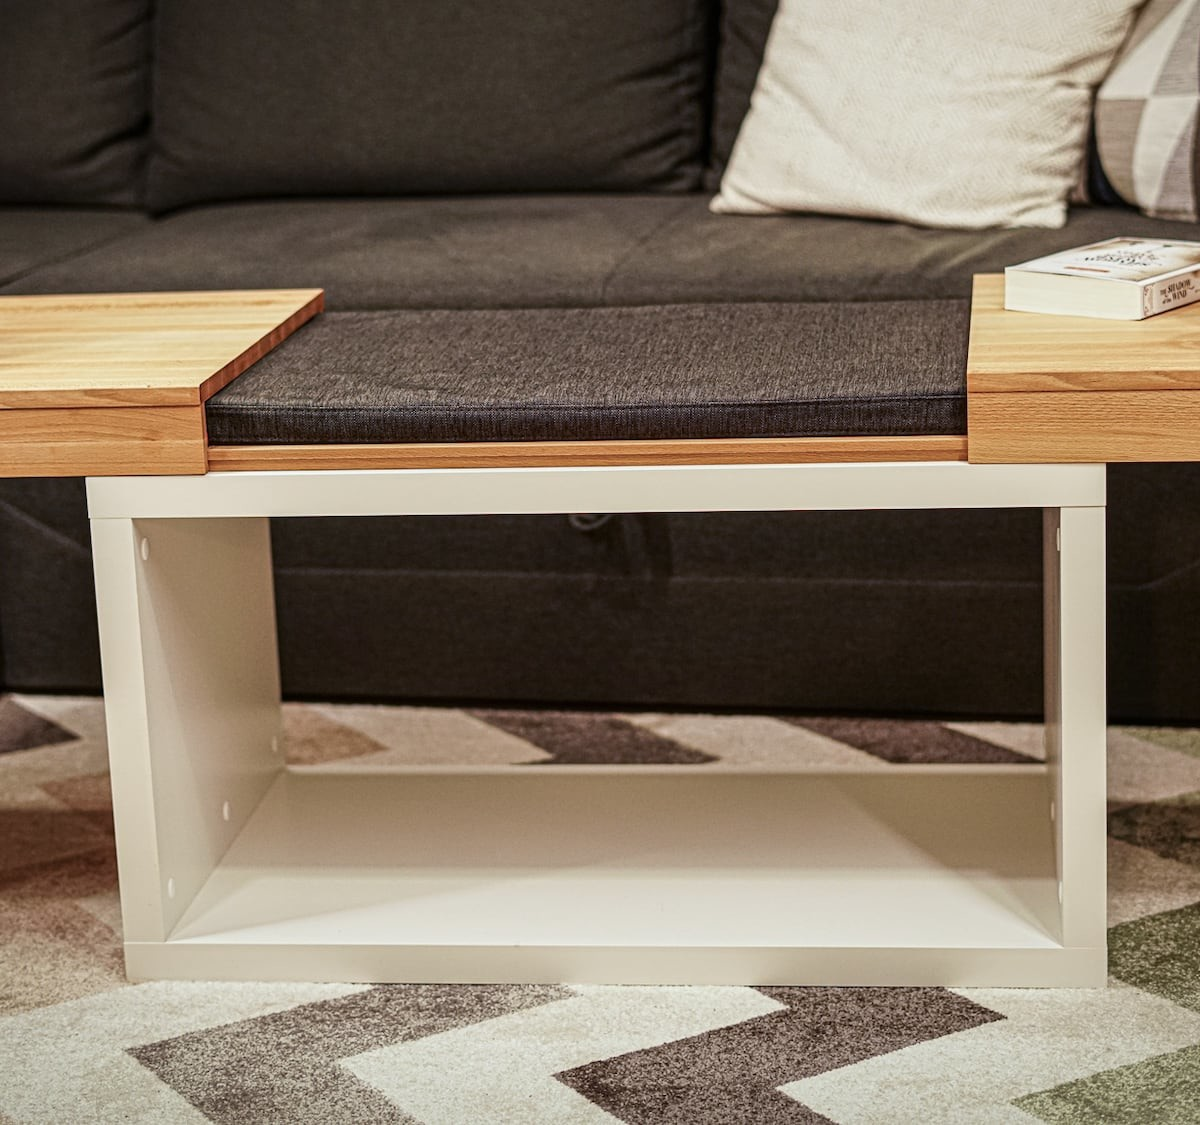 Comforttable coffee table is both stylish and comfy